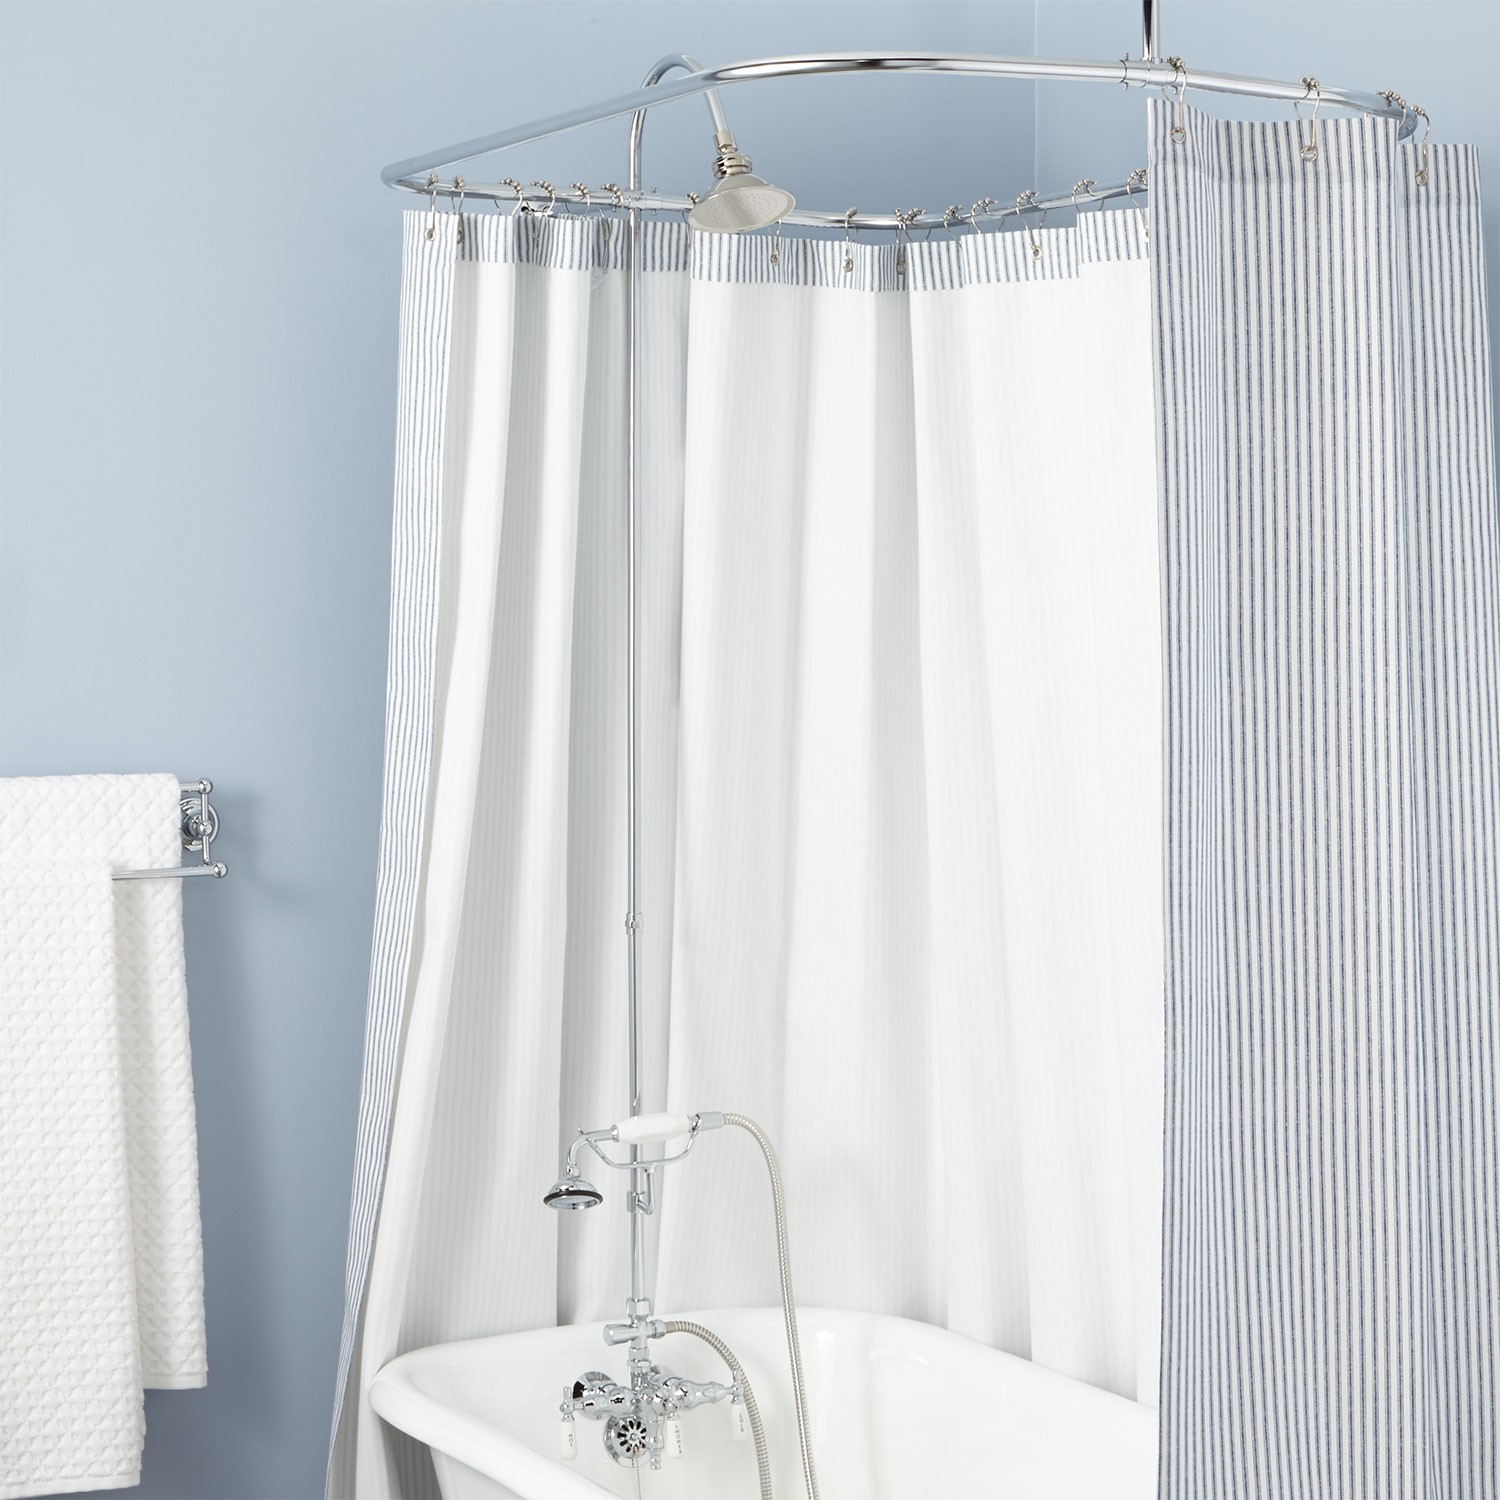 Clawfoot Tub Shower Curtain | Shower Curtains for Claw Foot Tubs | Clawfoot Tub Shower Curtain Rod You Can Make Yourself